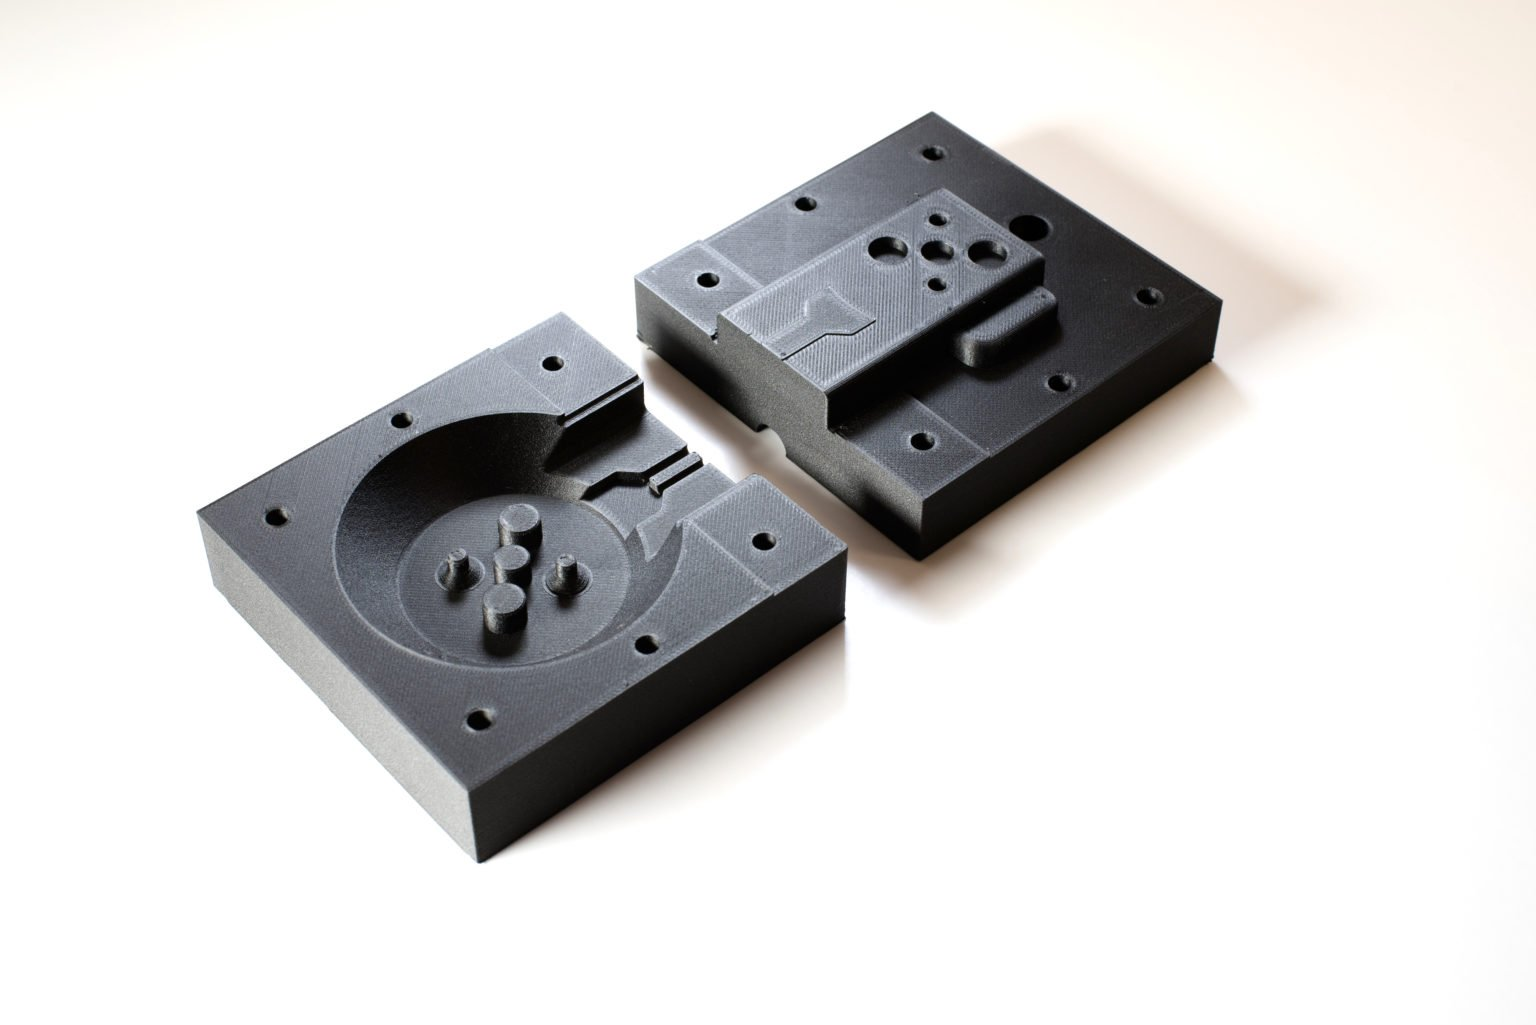 A thermoset mold printed out of Onyx with precision fittings matching Humanetics designs.